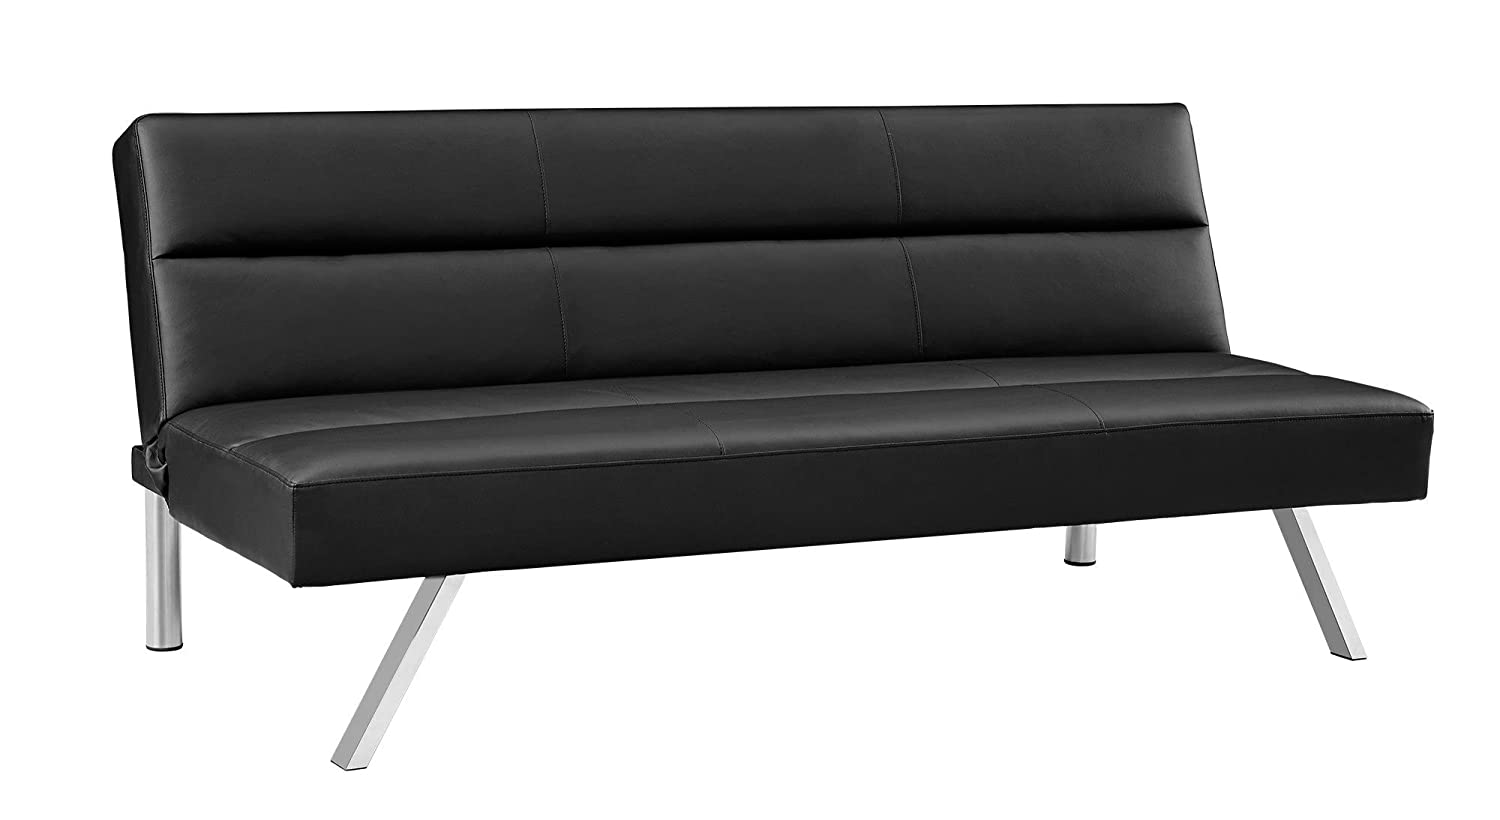 amazoncom premium sofa futon couch modern design w rich faux leather sturdy stainless steel legs and comfortable memory foam cushion from sofa to bed